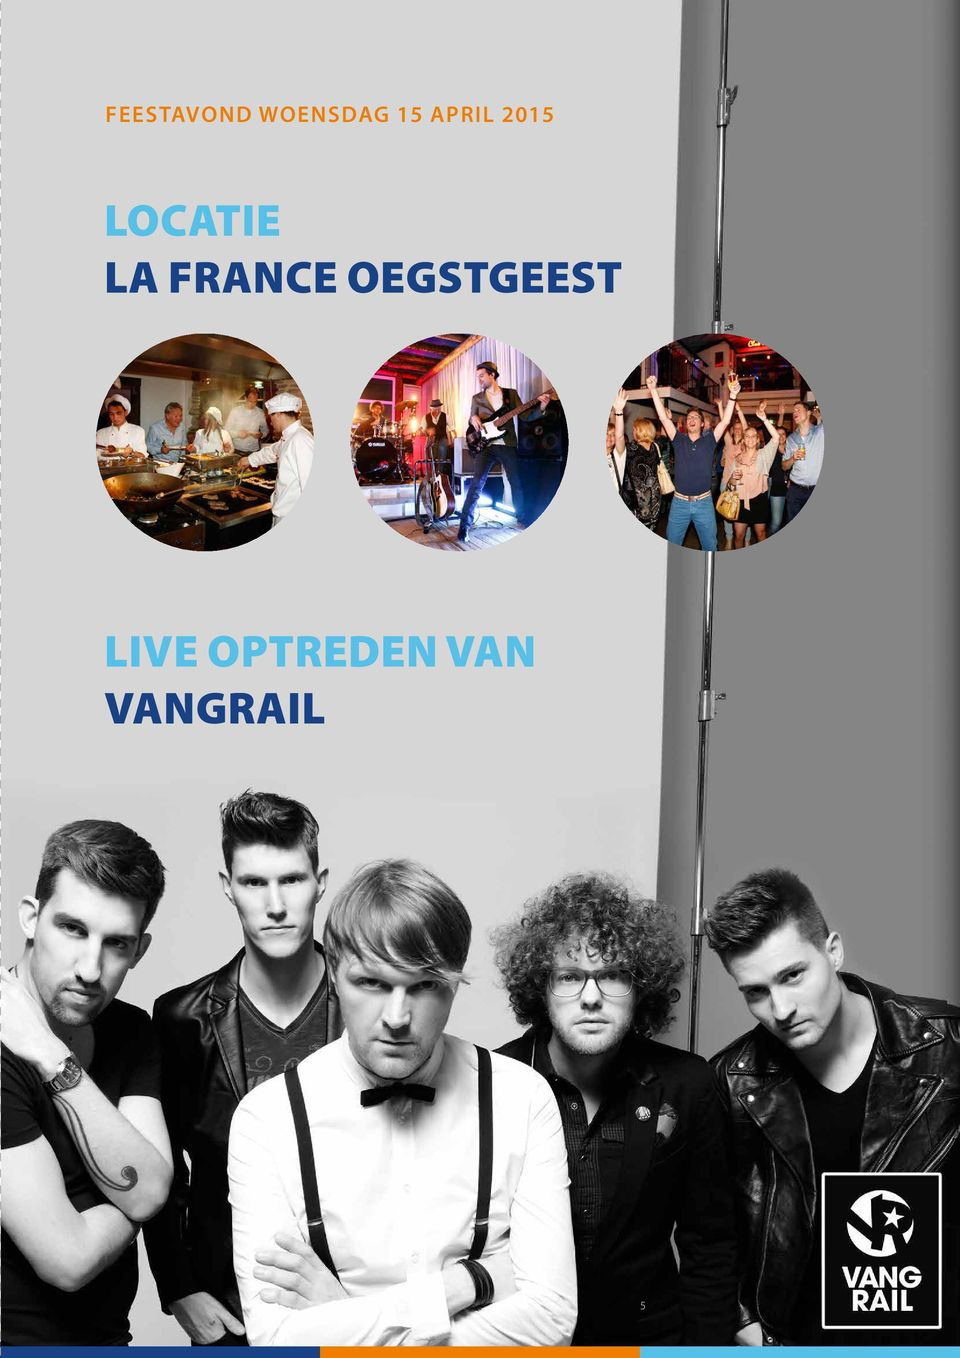 france Oegstgeest live